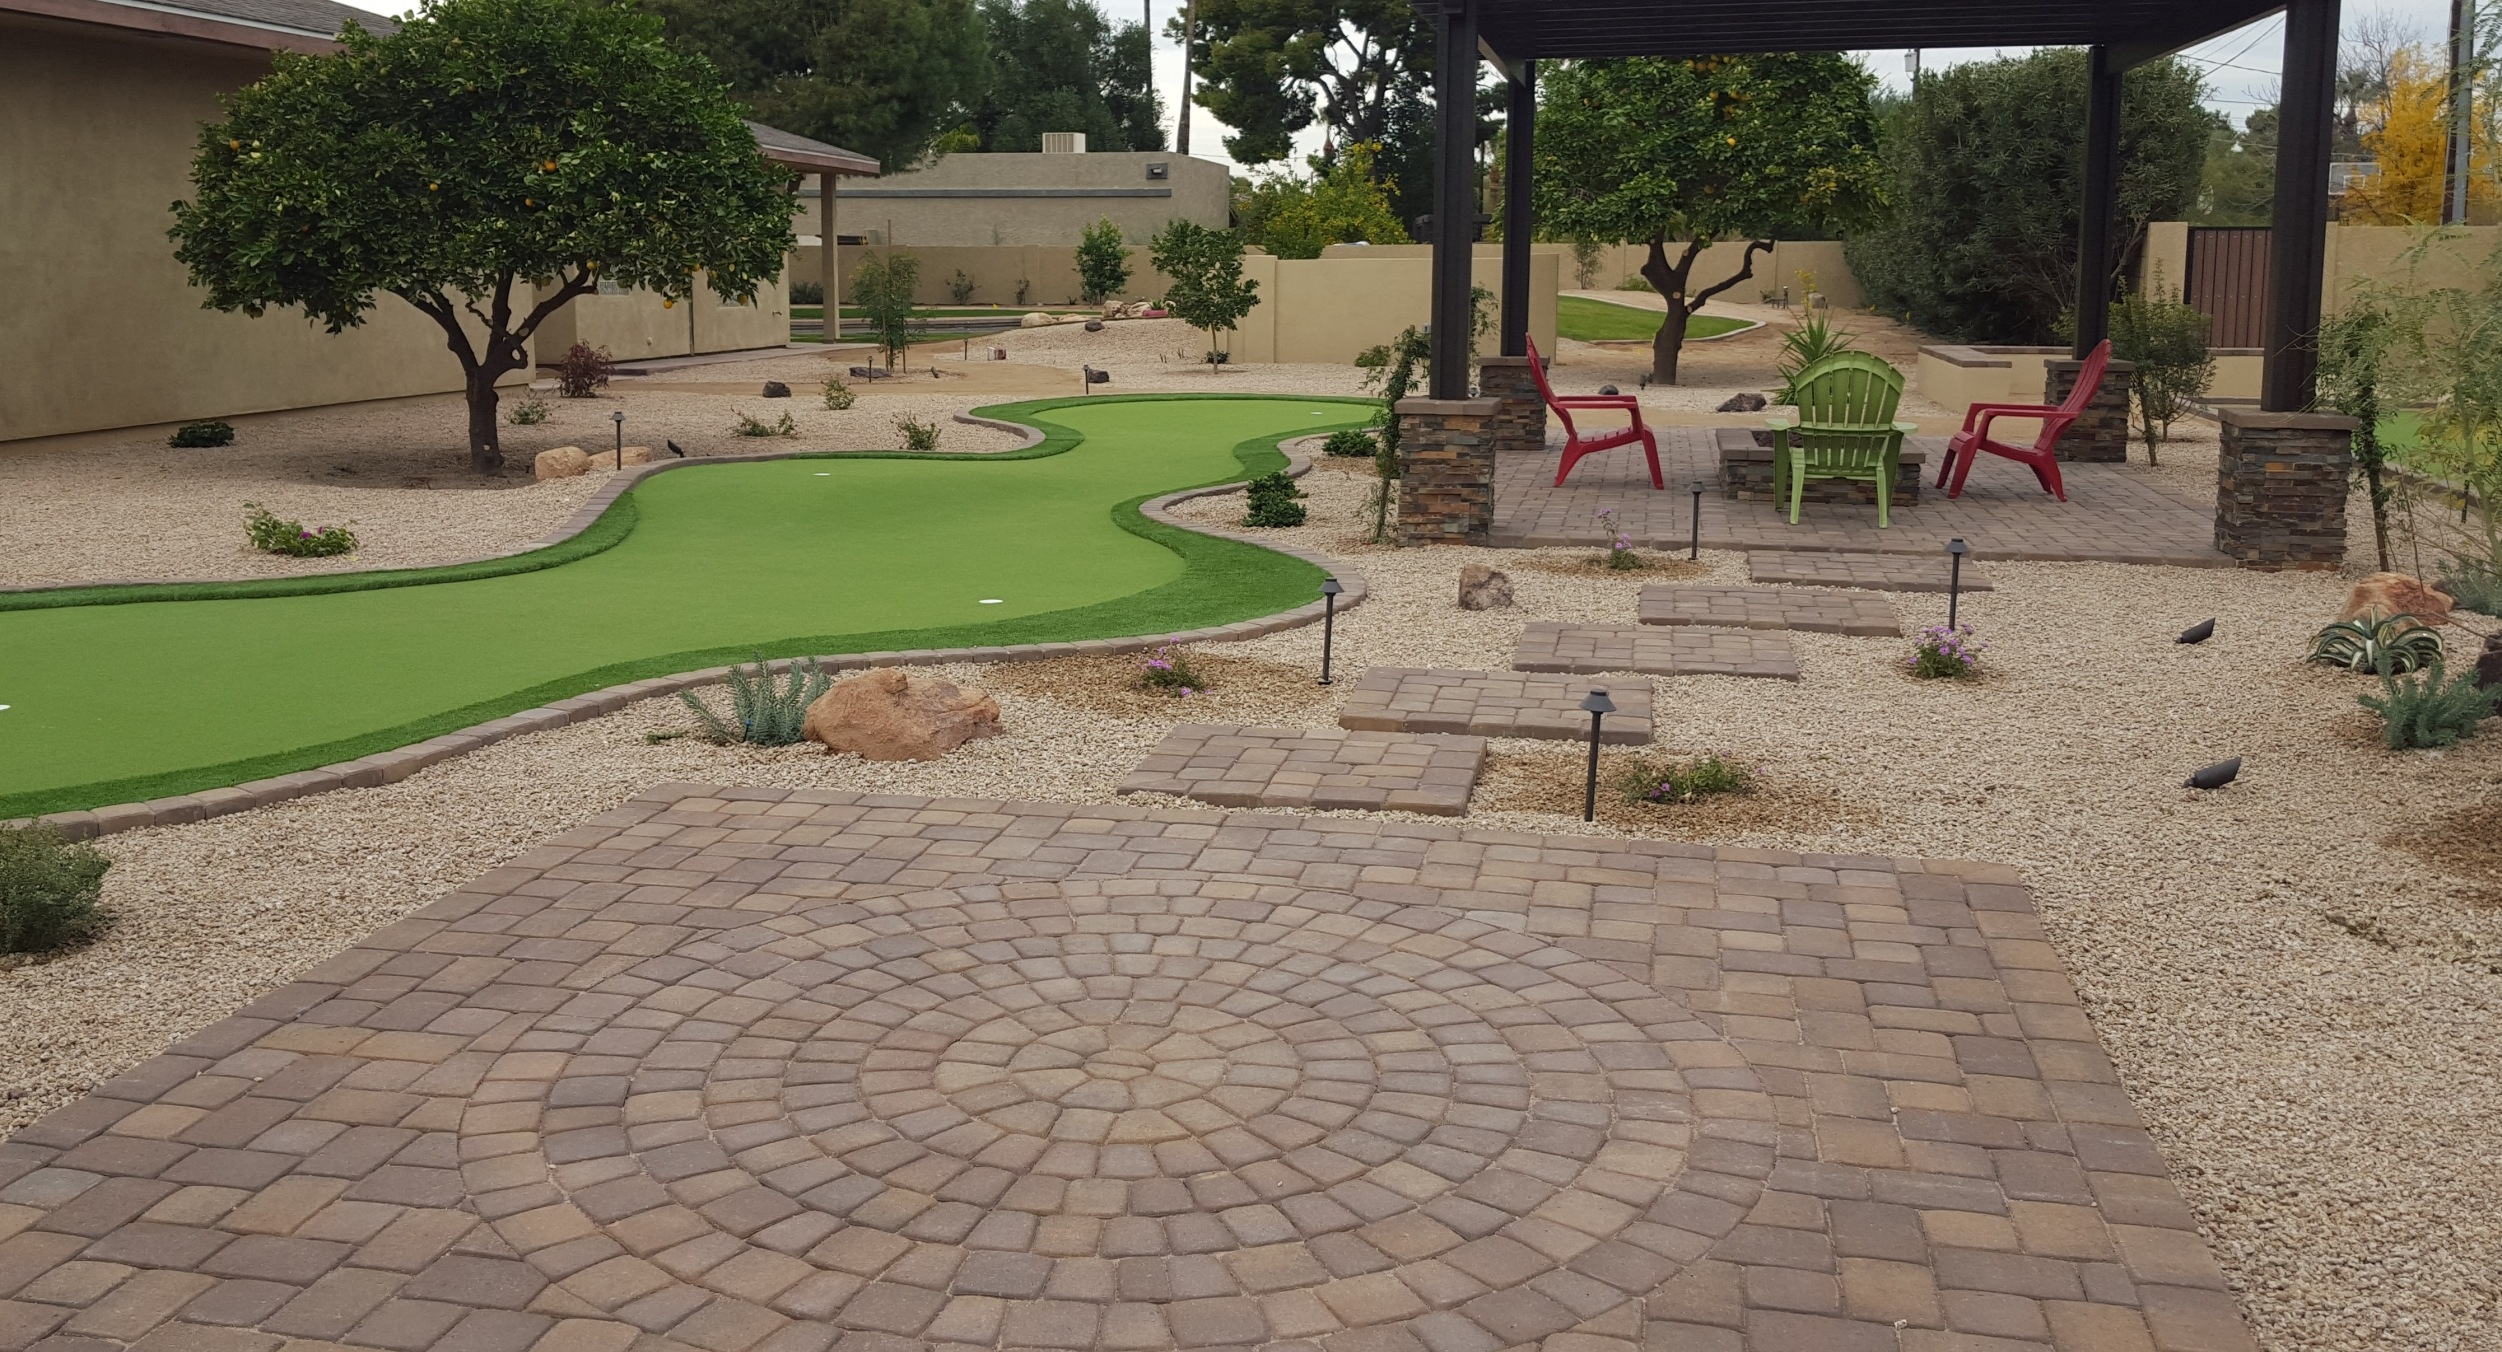 What people want in their Scottsdale or Phoenix outdoor living spaces varies. This client added a big putting green next to a pergola-shaded patio with a fire pit; useful any time of day.